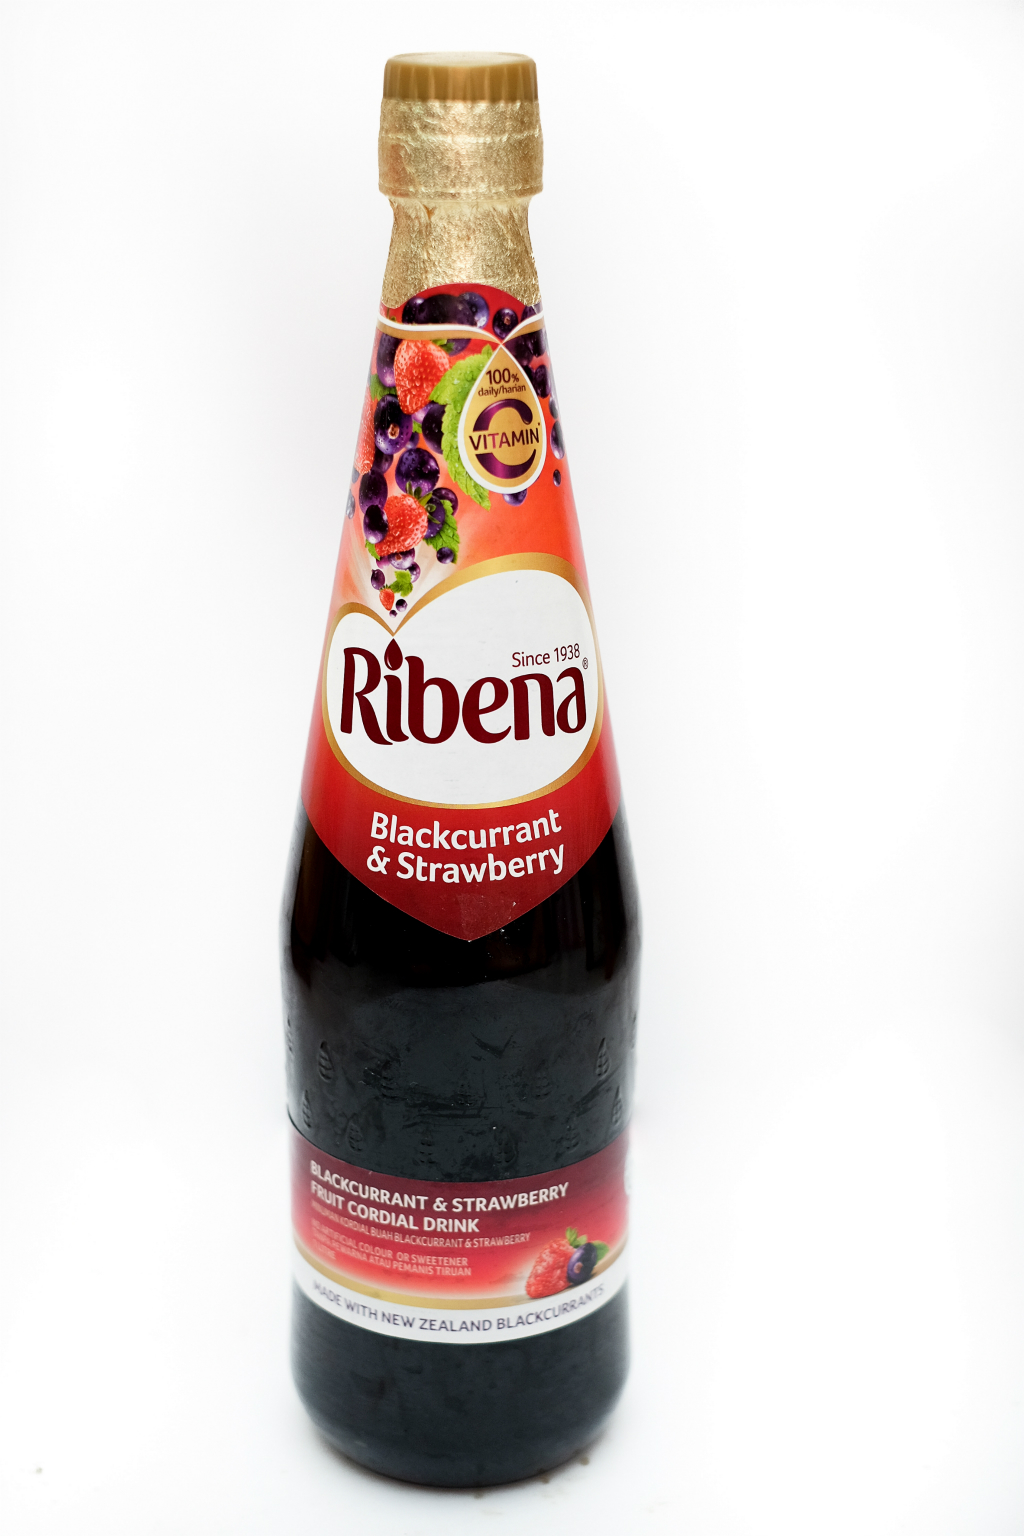 Recipe: Ribena Blackcurrant & Strawberry Cheese Cake